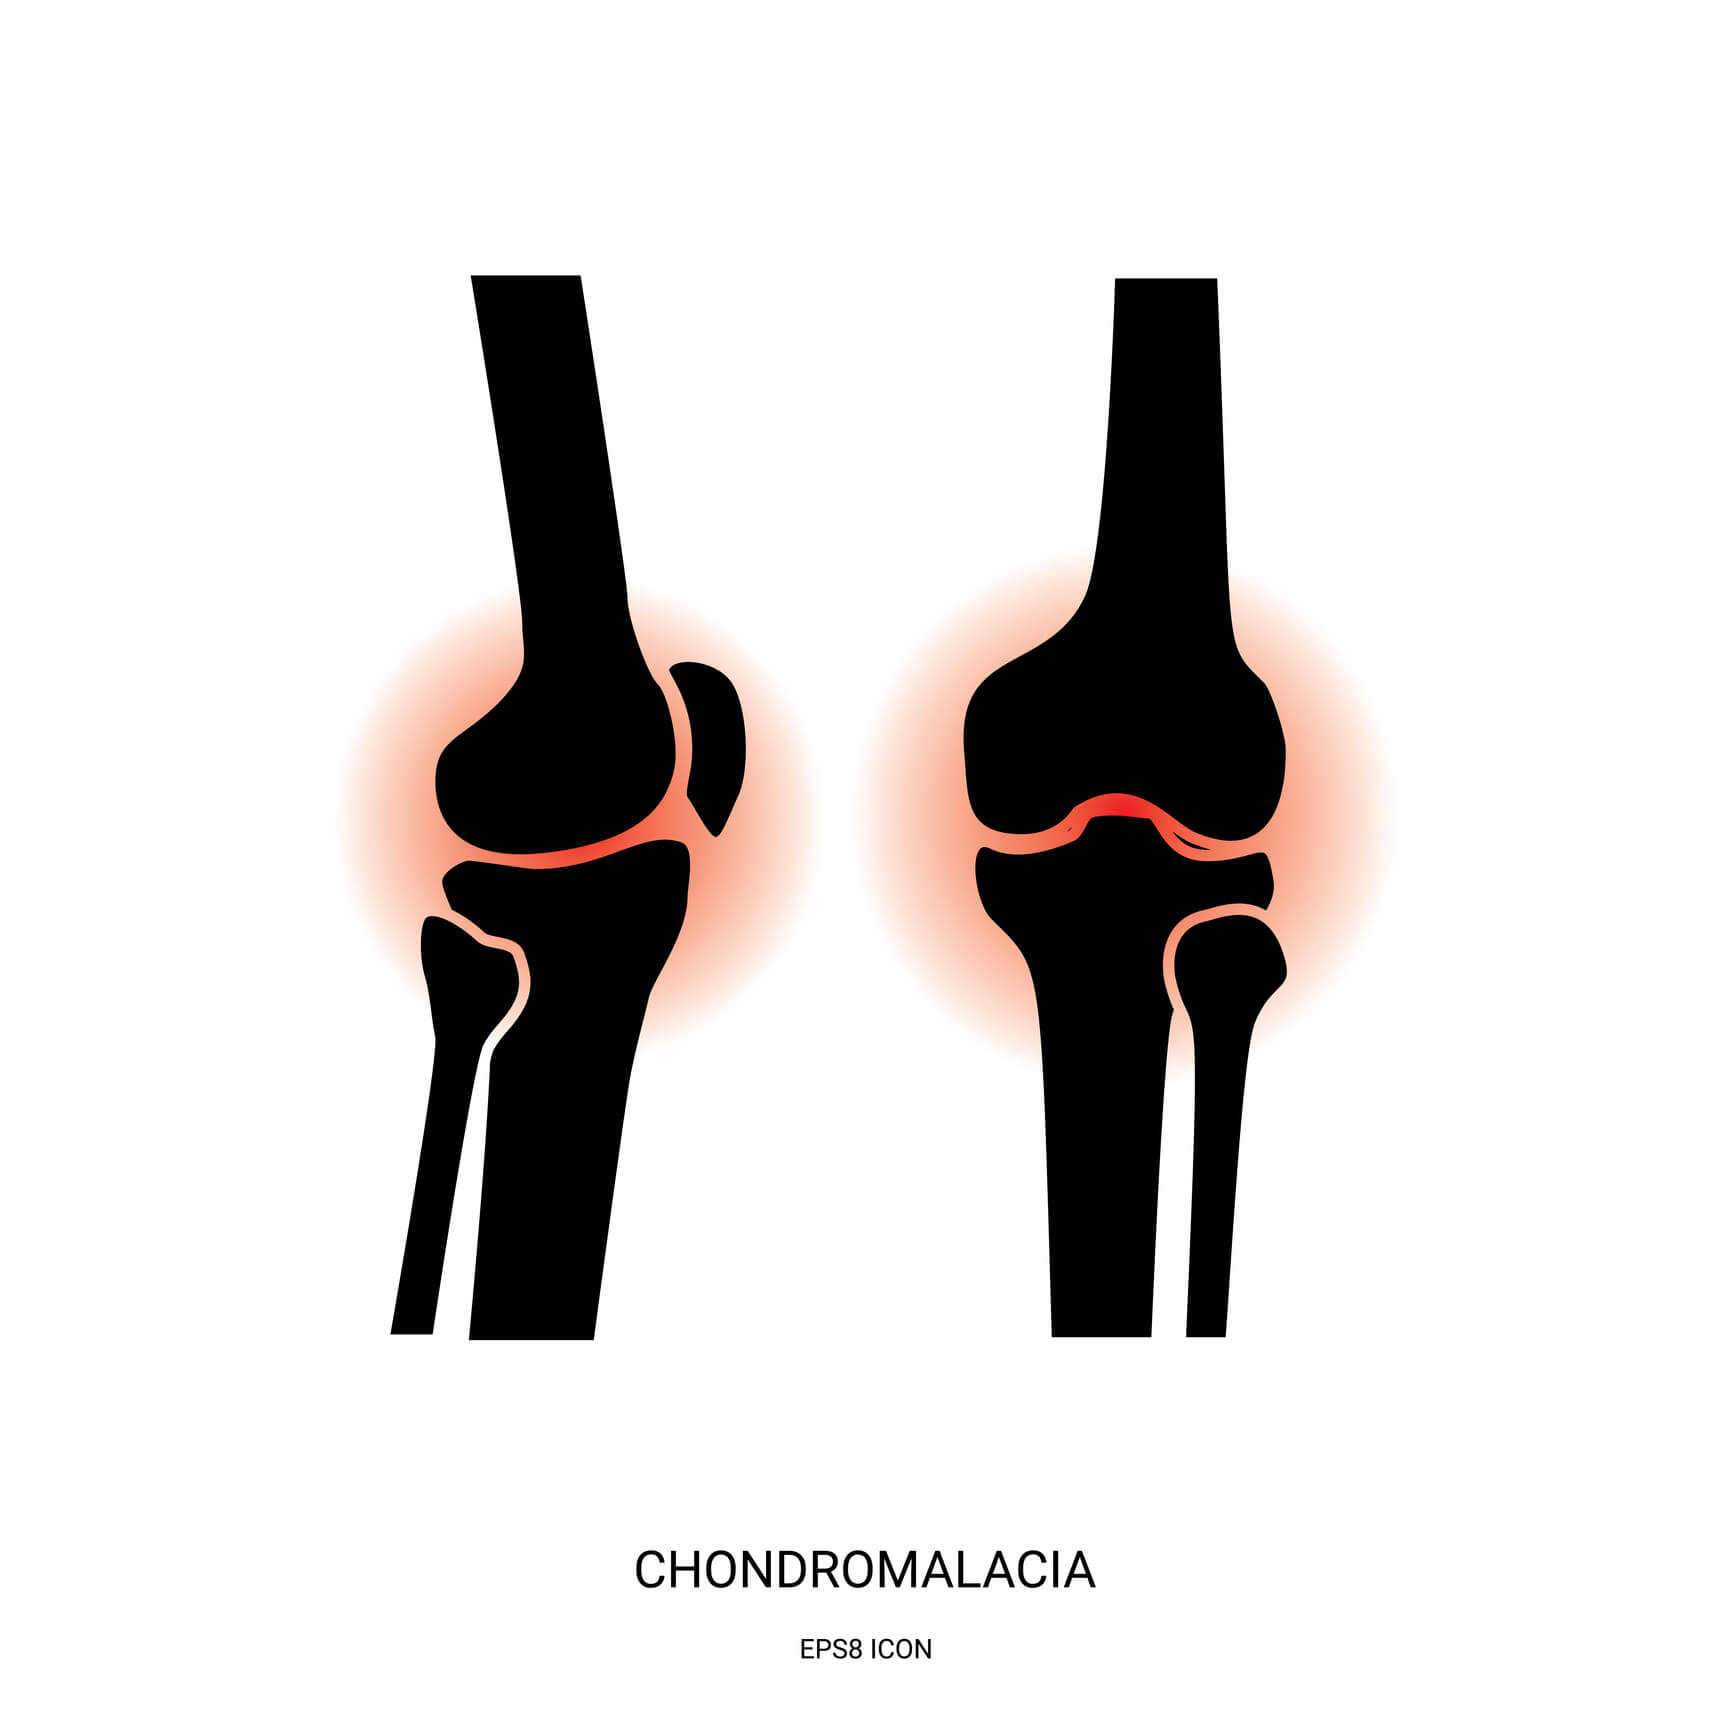 Image of a knee affected by chondromalacia